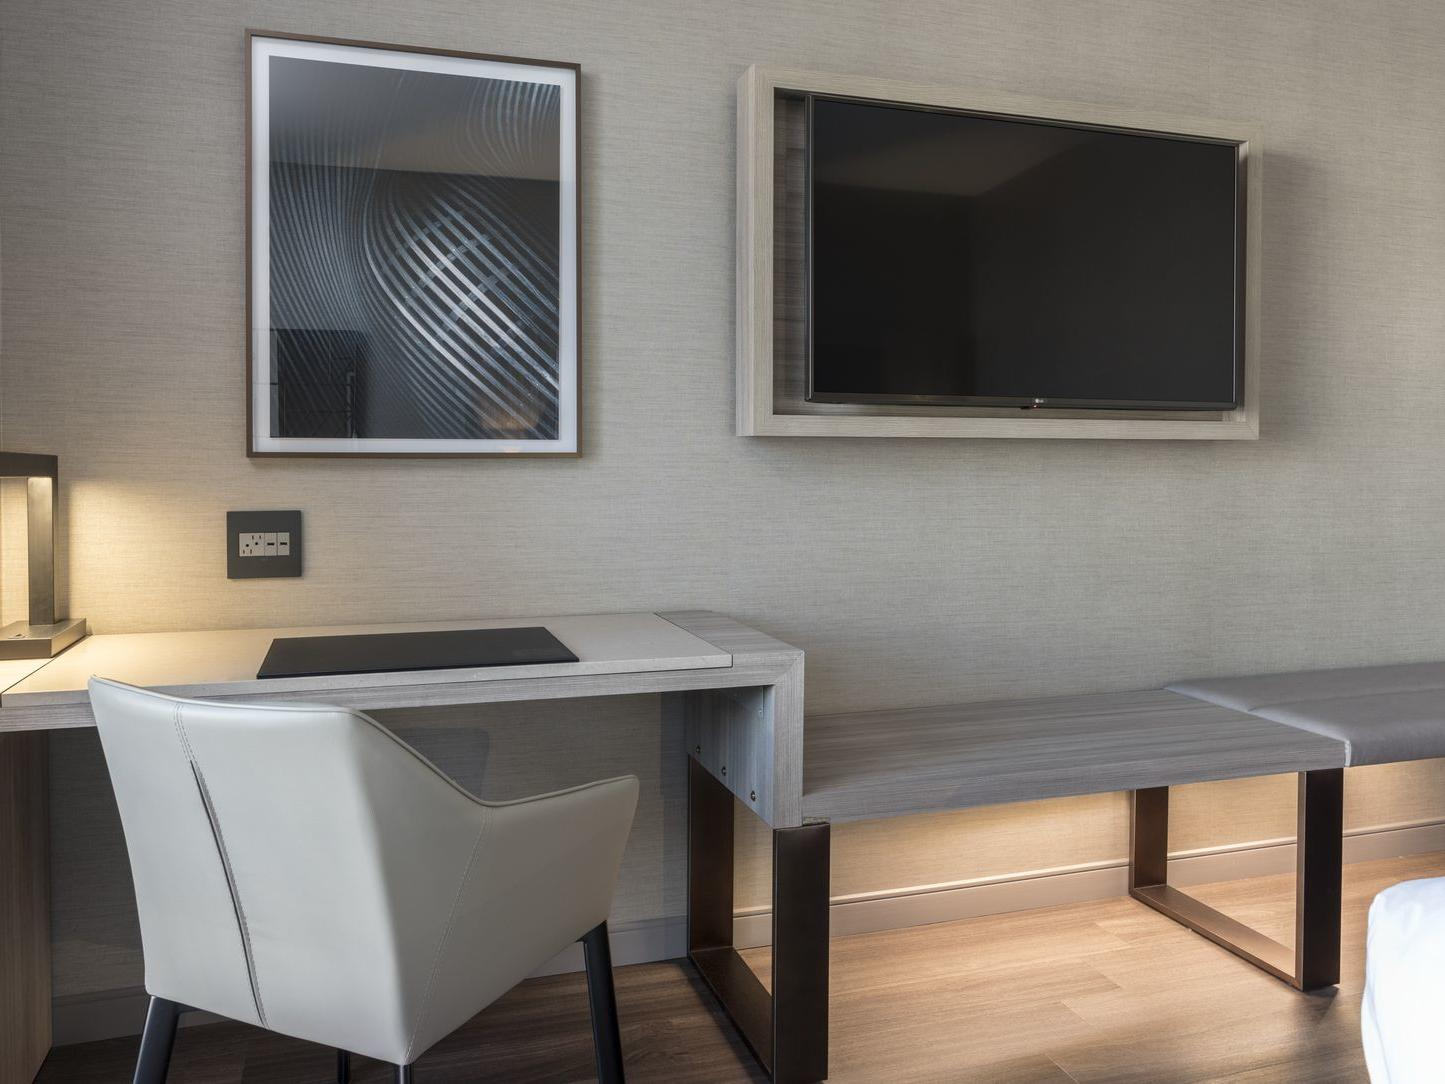 Desk and chair with wall mounted TV